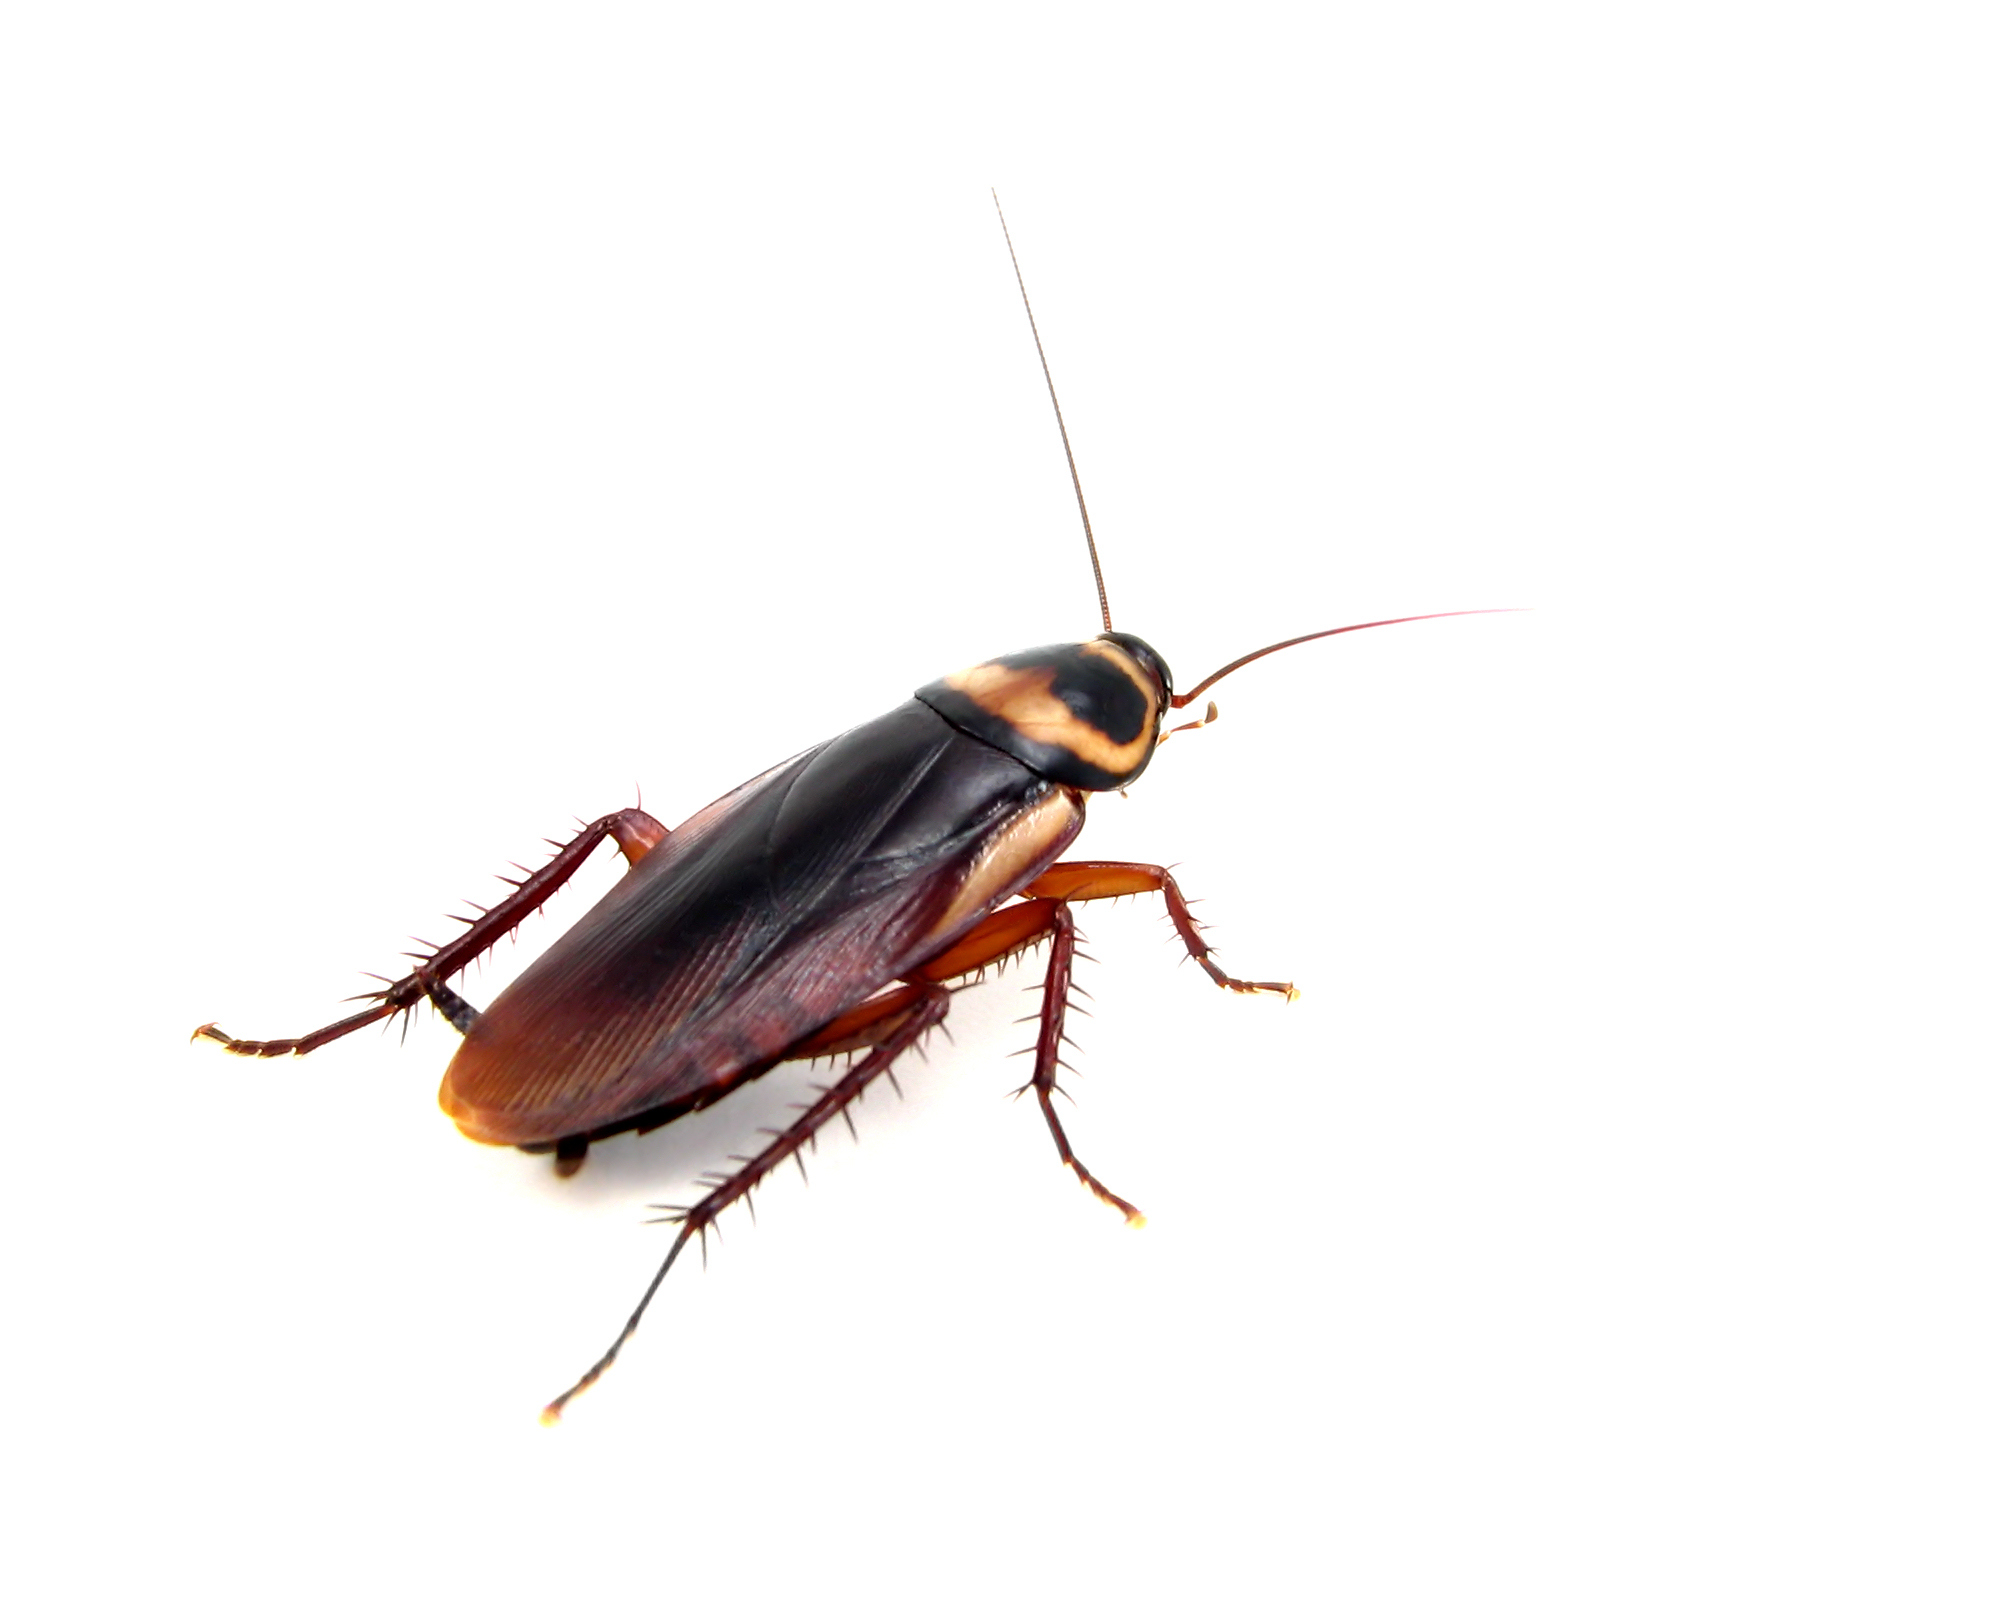 Roach on white background